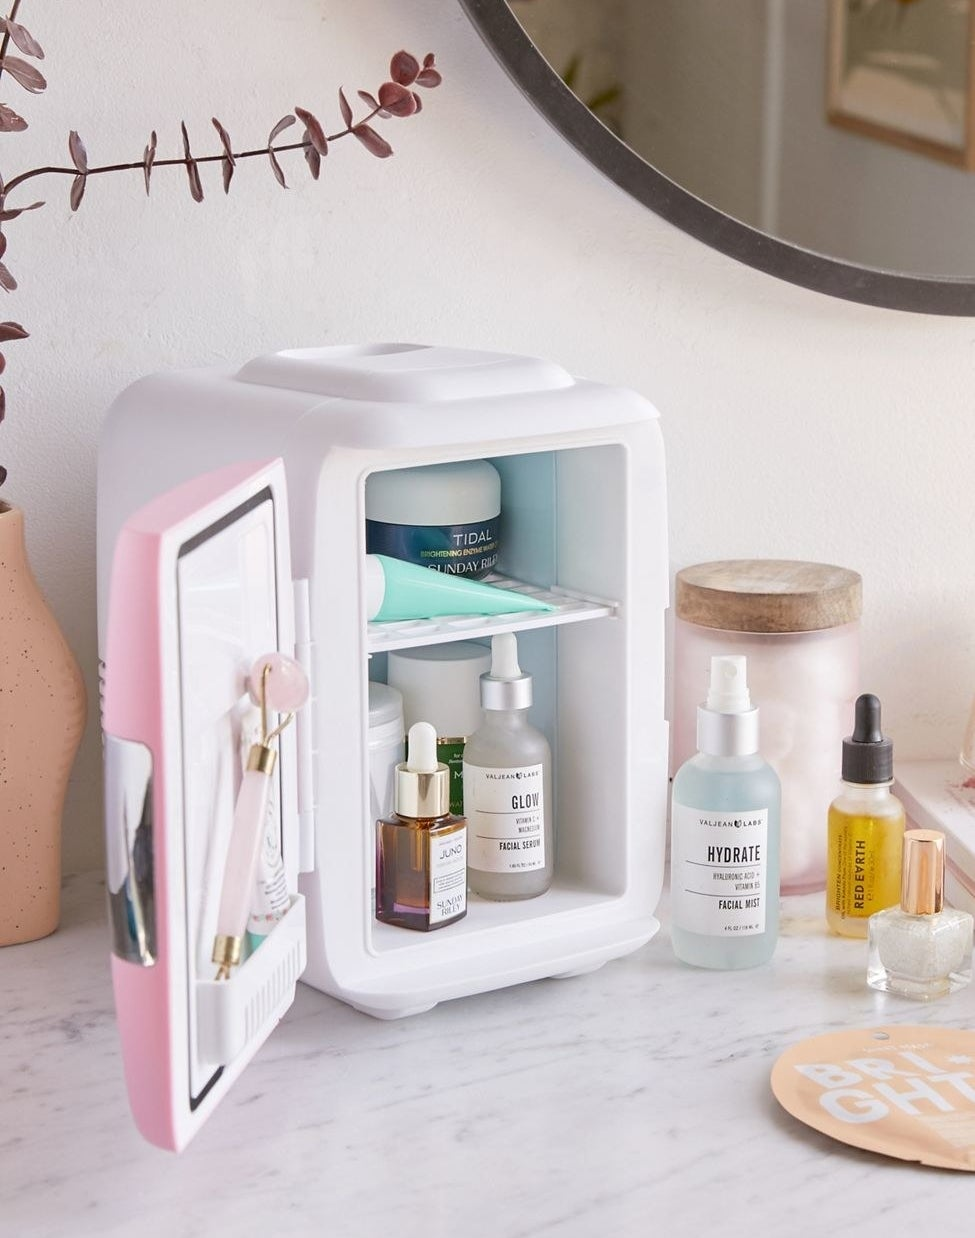 The small fridge on a counter with a pink door open, showing how it has a shelf on the inside of the door, and one in the fridge that's filled with assorted beauty products